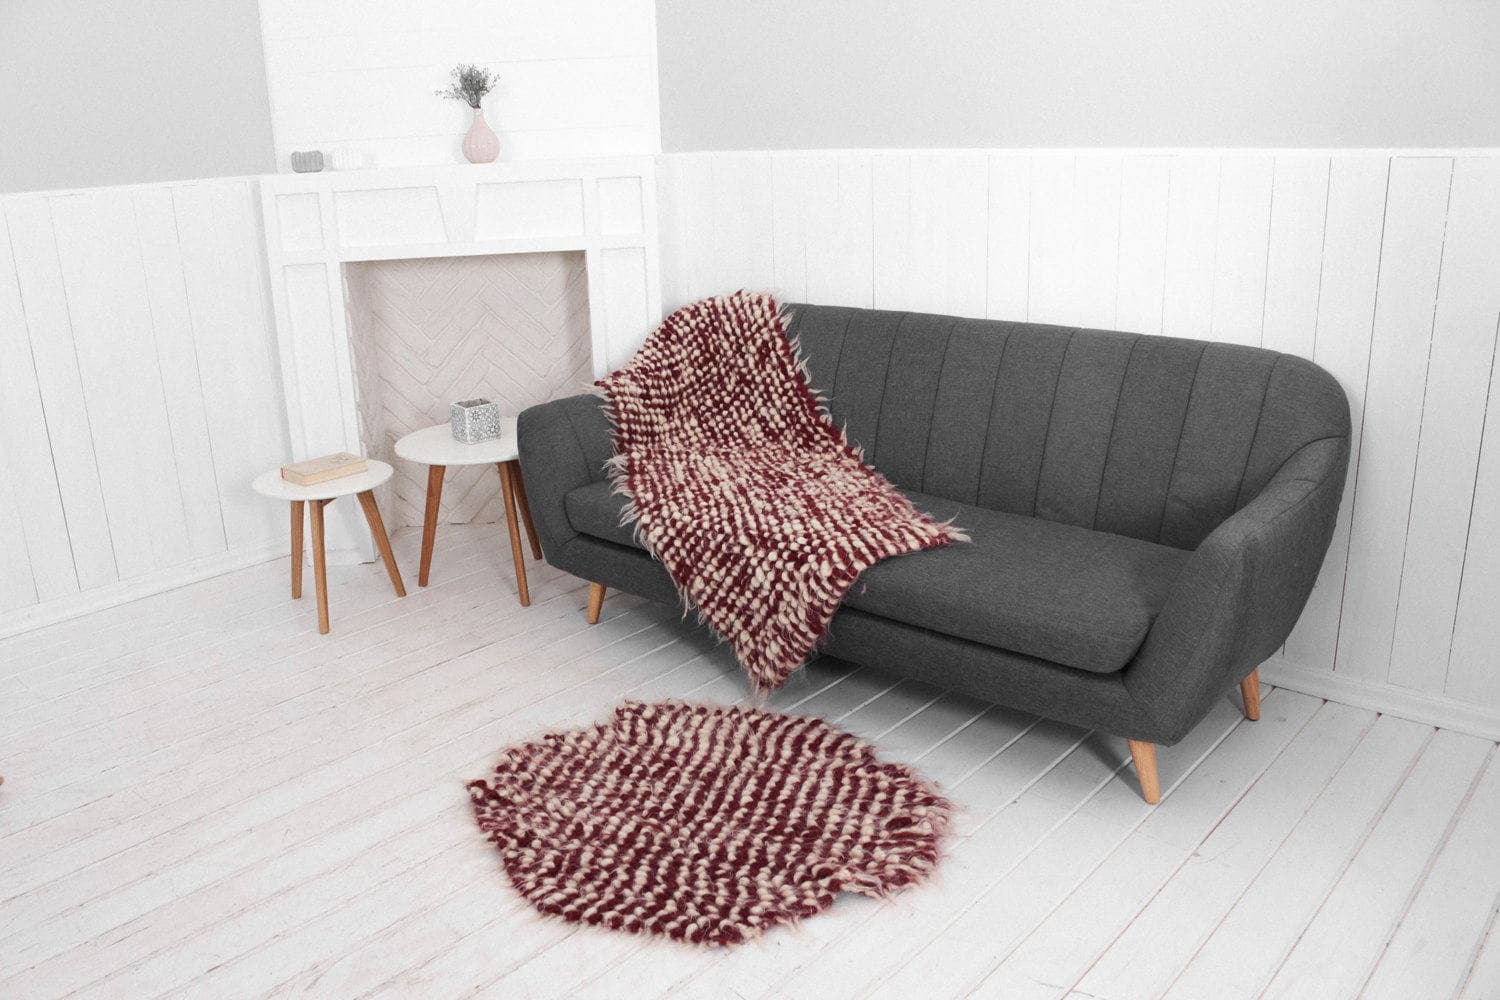 Sofa 150 Cm Accent Throw Blanket Wool Sofa Cover Armchair Coverlet Small Throw For Sofa Hand Woven Chair Throw Sofa Throw Red Decorative Blanket